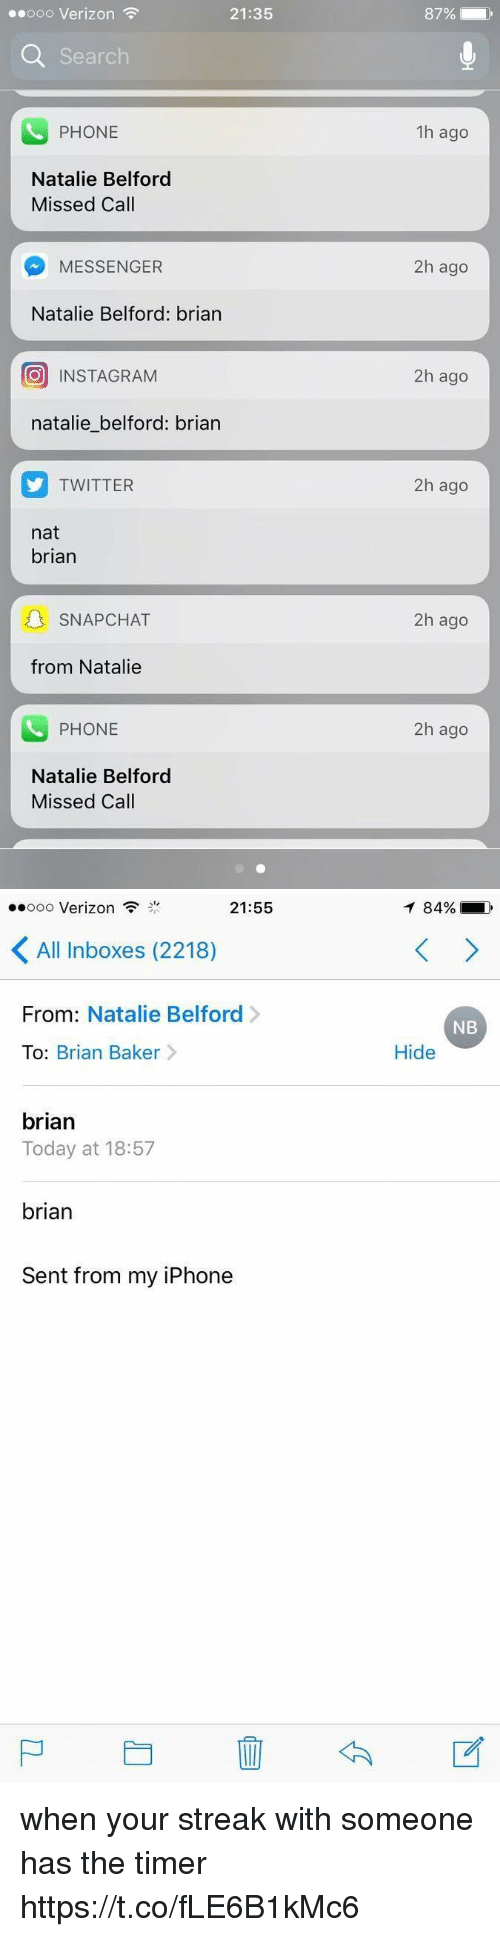 Instagram, Iphone, and Phone: ..ooo Verizon  21:35  87%  Search  PHONE  1h ago  Natalie Belford  Missed Call  MESSENGER  2h ago  Natalie Belford: brian  O INSTAGRAM  2h ago  natalie_belford: brian  TWITTER  2h ago  nat  brian  SNAPCHAT  2h ago  from Natalie  PHONE  2h ago  Natalie Belford  Missed Call   ooooo Verizon  21:55  84%  くAll Inboxes (2218)  From: Natalie Belford>  NB  To: Brian Baker  Hide  brian  Today at 18:57  brian  Sent from my iPhone when your streak with someone has the timer https://t.co/fLE6B1kMc6